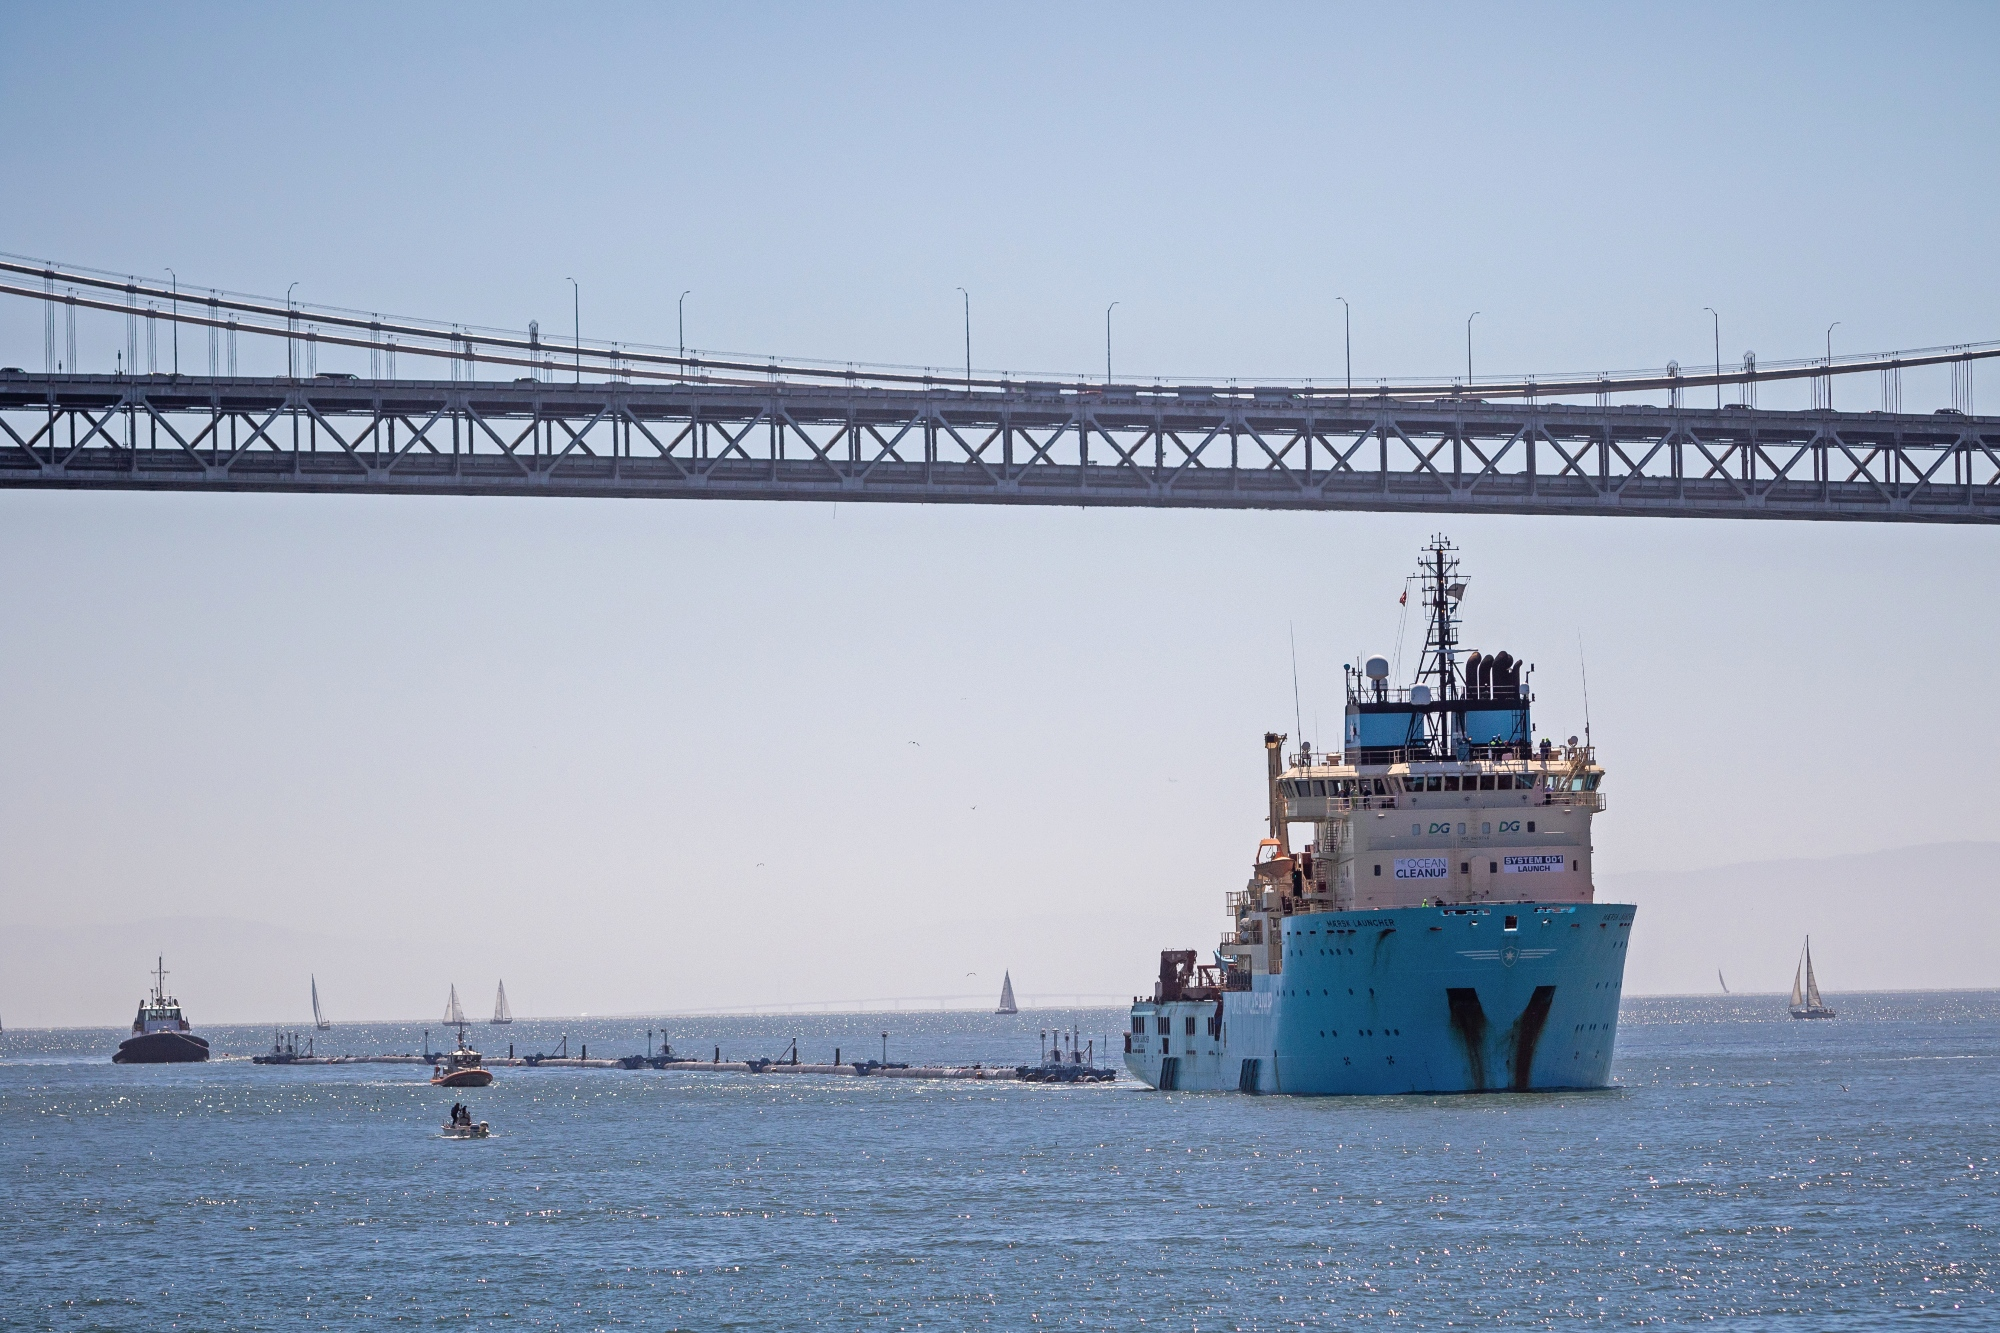 The cleanup system will travel 240 nautical miles offshore for a two-week trial before continuing its journey toward the Great Pacific Garbage Patch, 1200 nautical miles offshore, to start the cleanup.